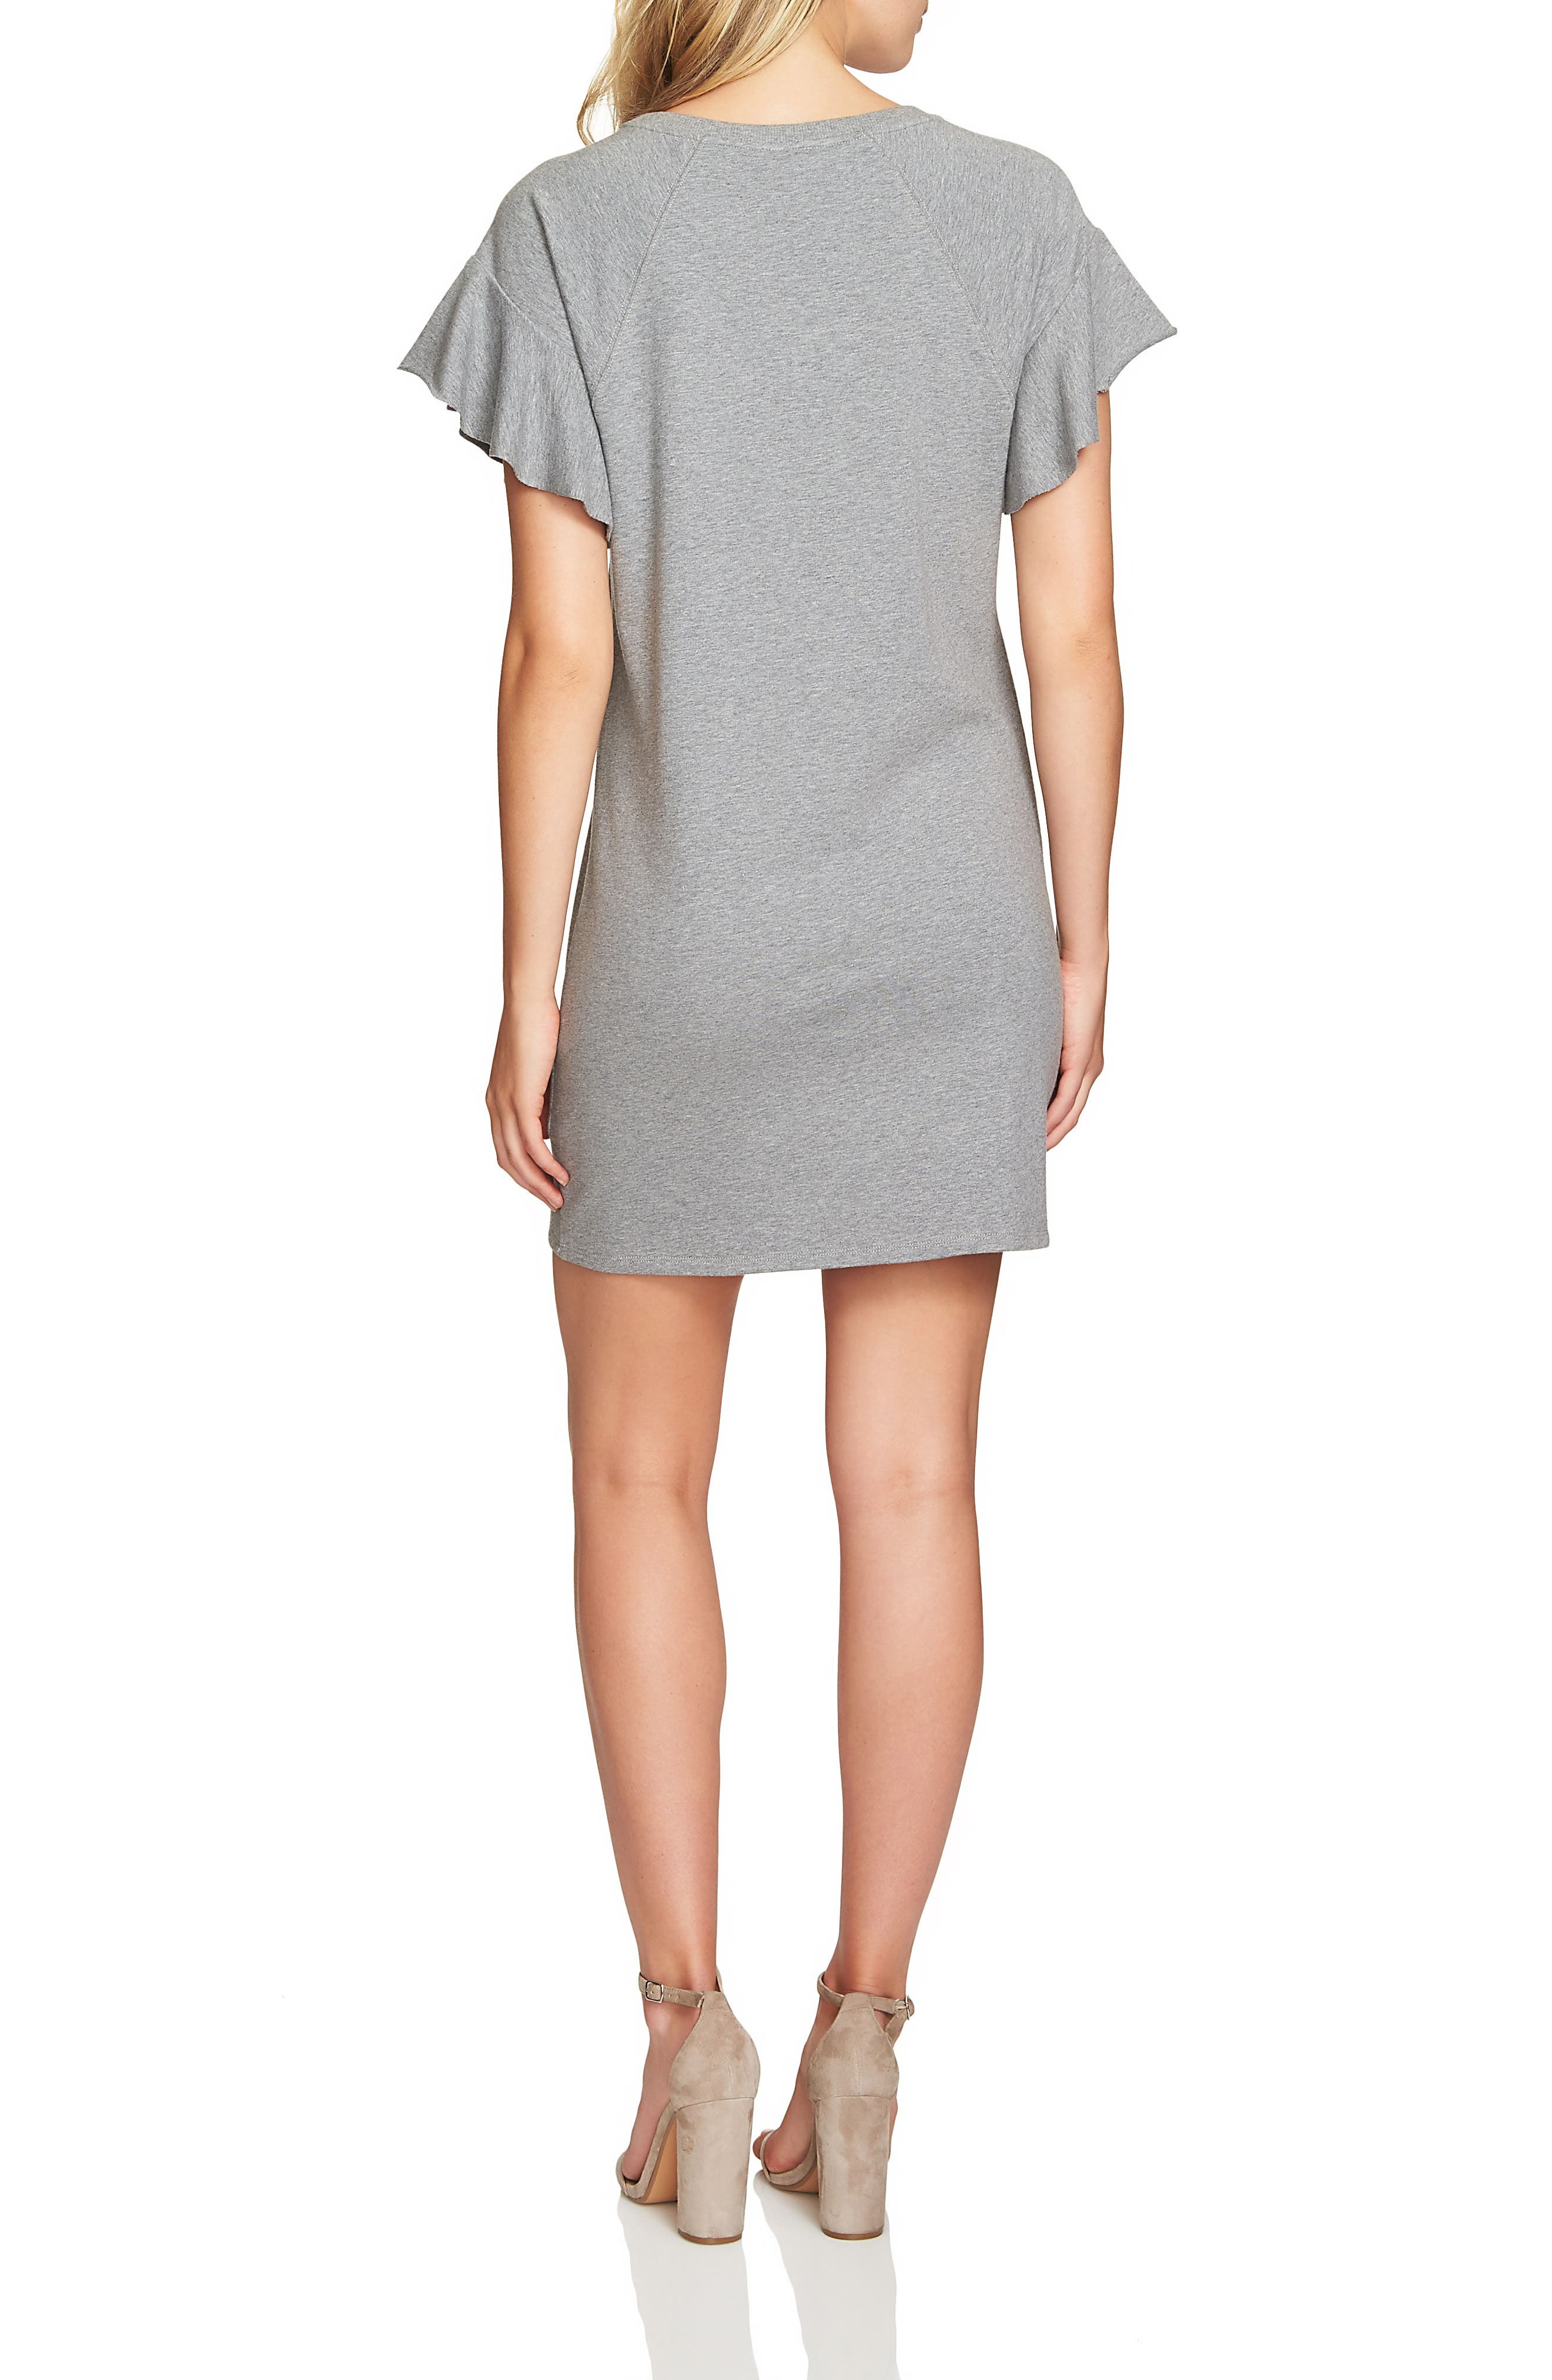 French Terry T-Shirt Dress,                             Alternate thumbnail 3, color,